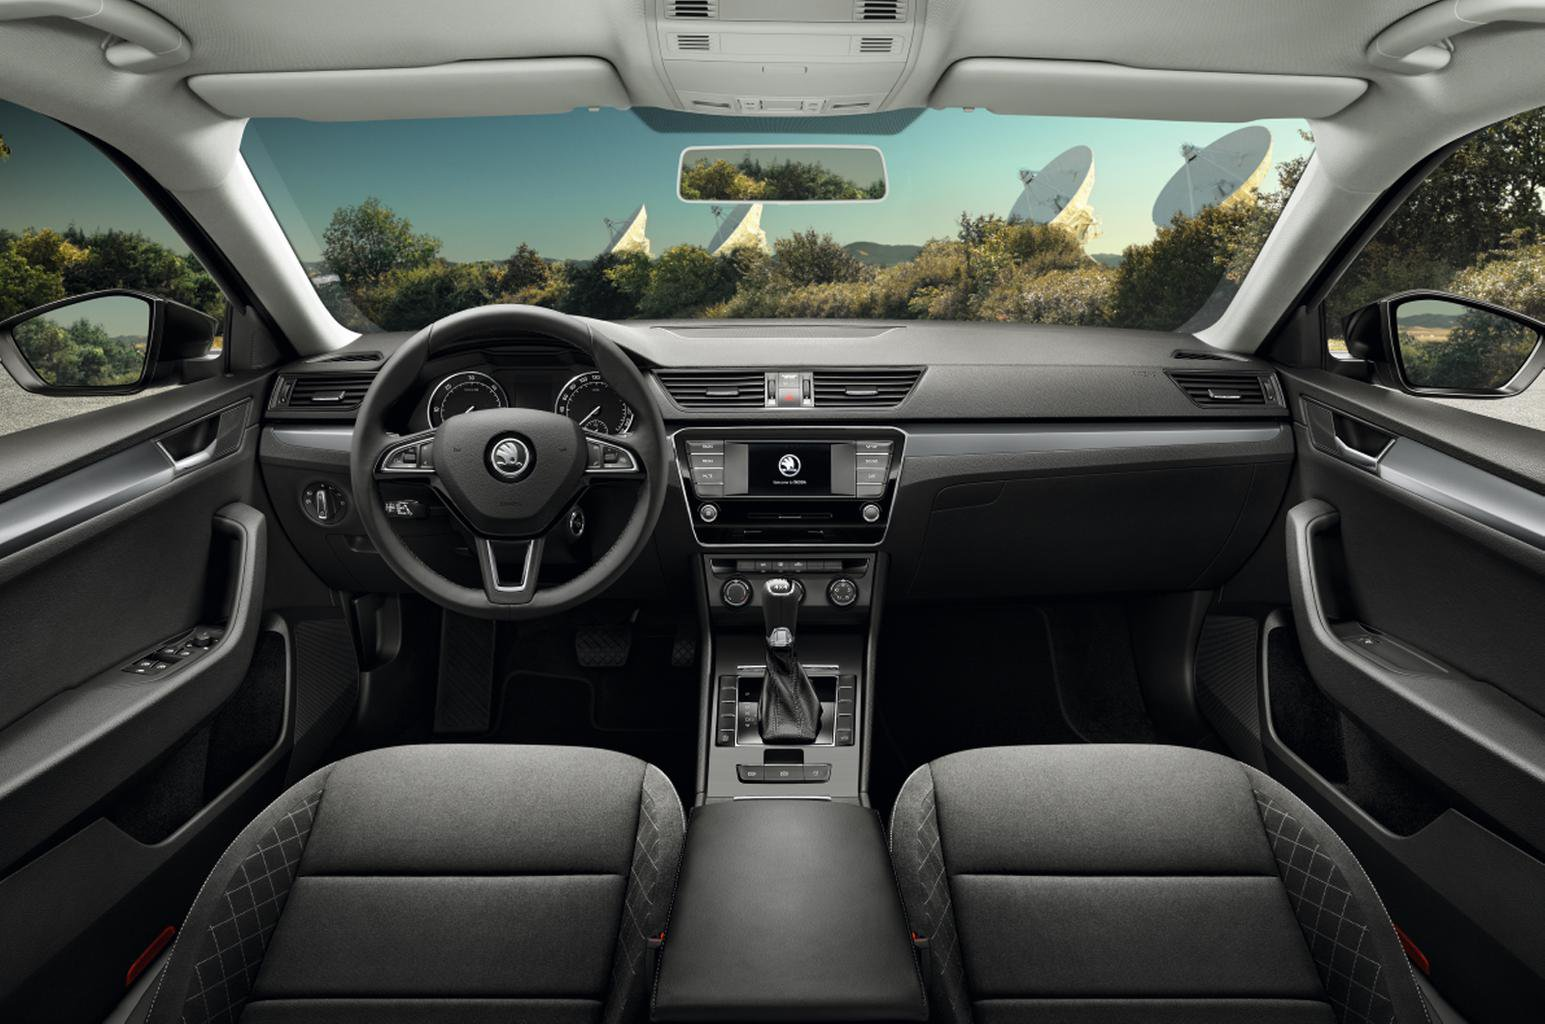 Promoted: Skoda Superb - An interior that's comfortable and practical